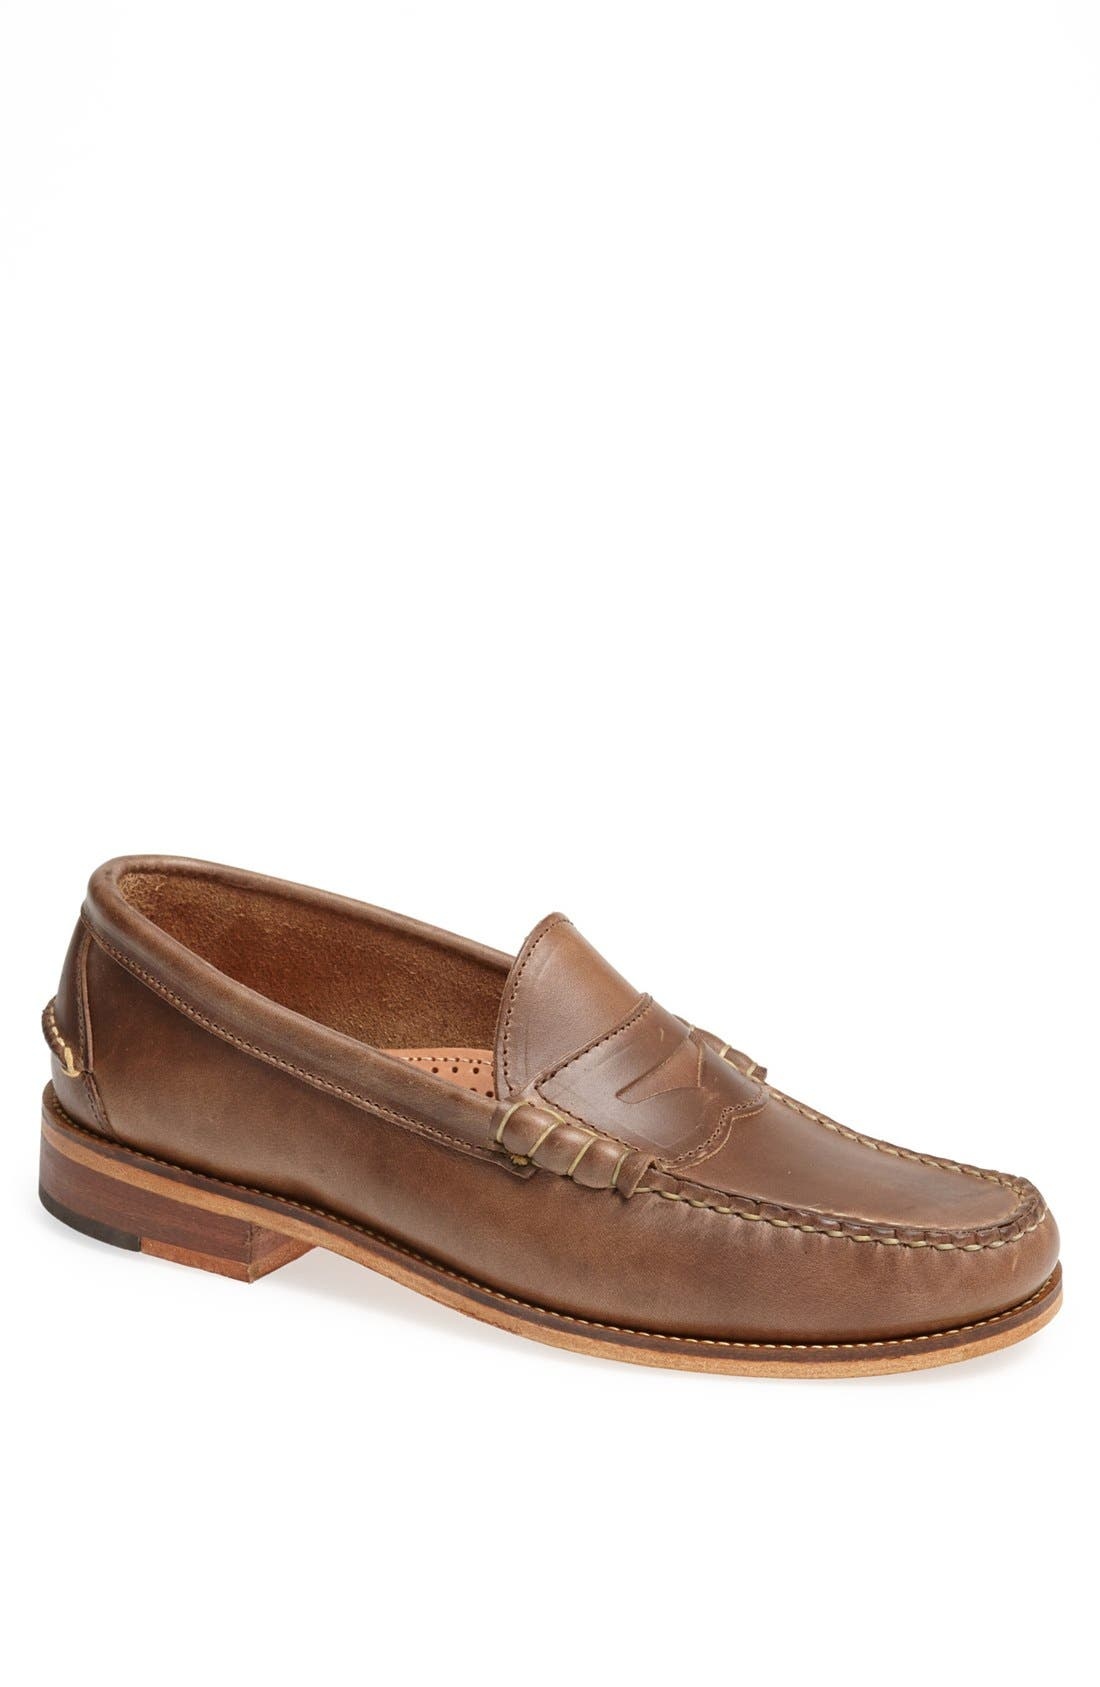 Main Image - Oak Street Bootmakers Beefroll Penny Loafer